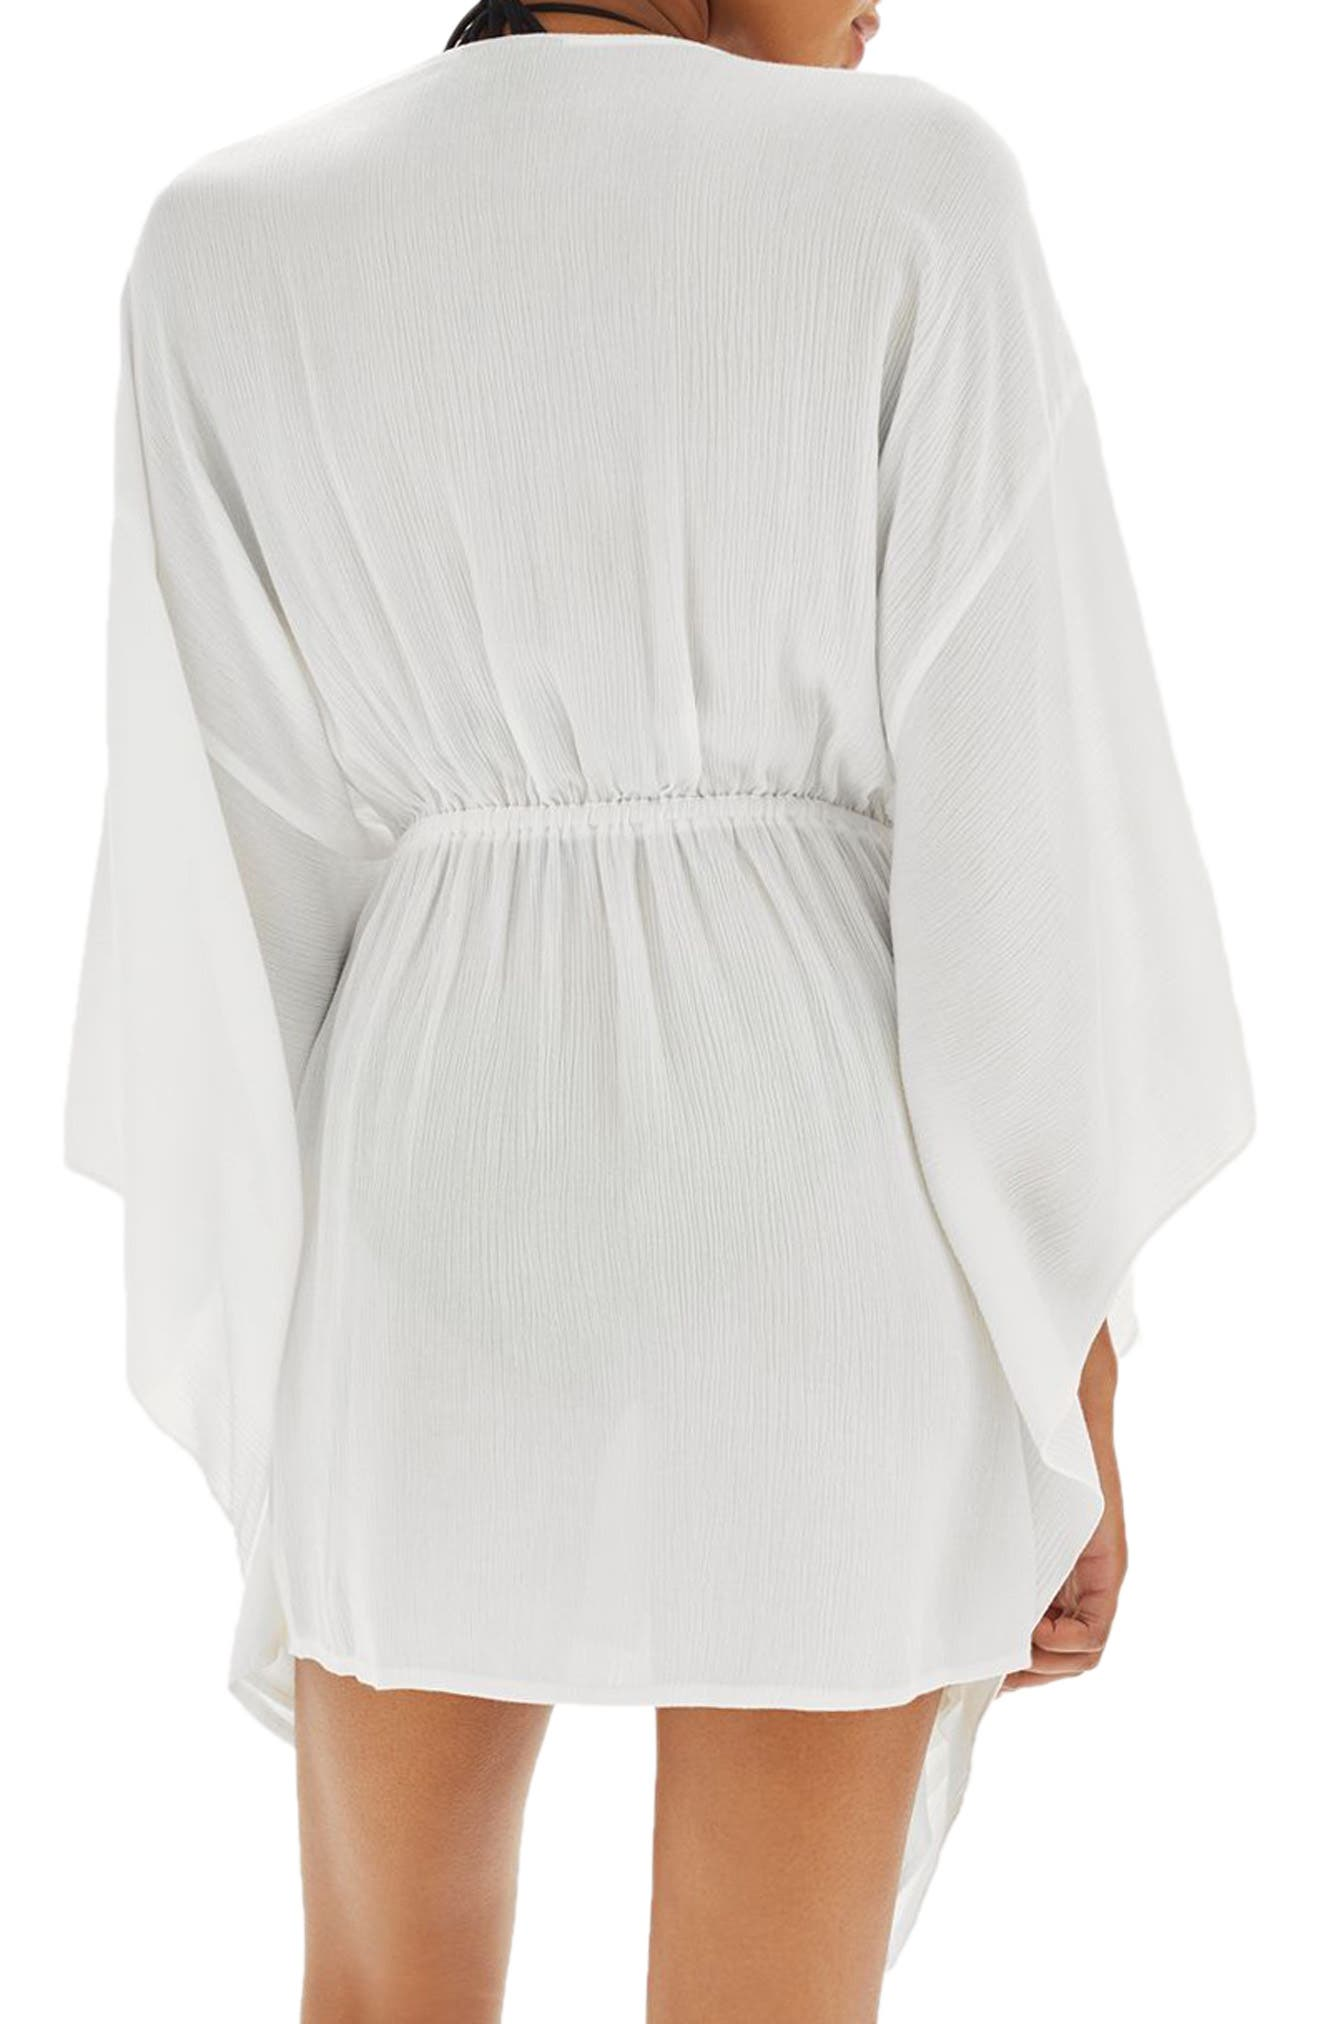 Alternate Image 3  - Topshop Ladder Stitch Cover-Up Caftan